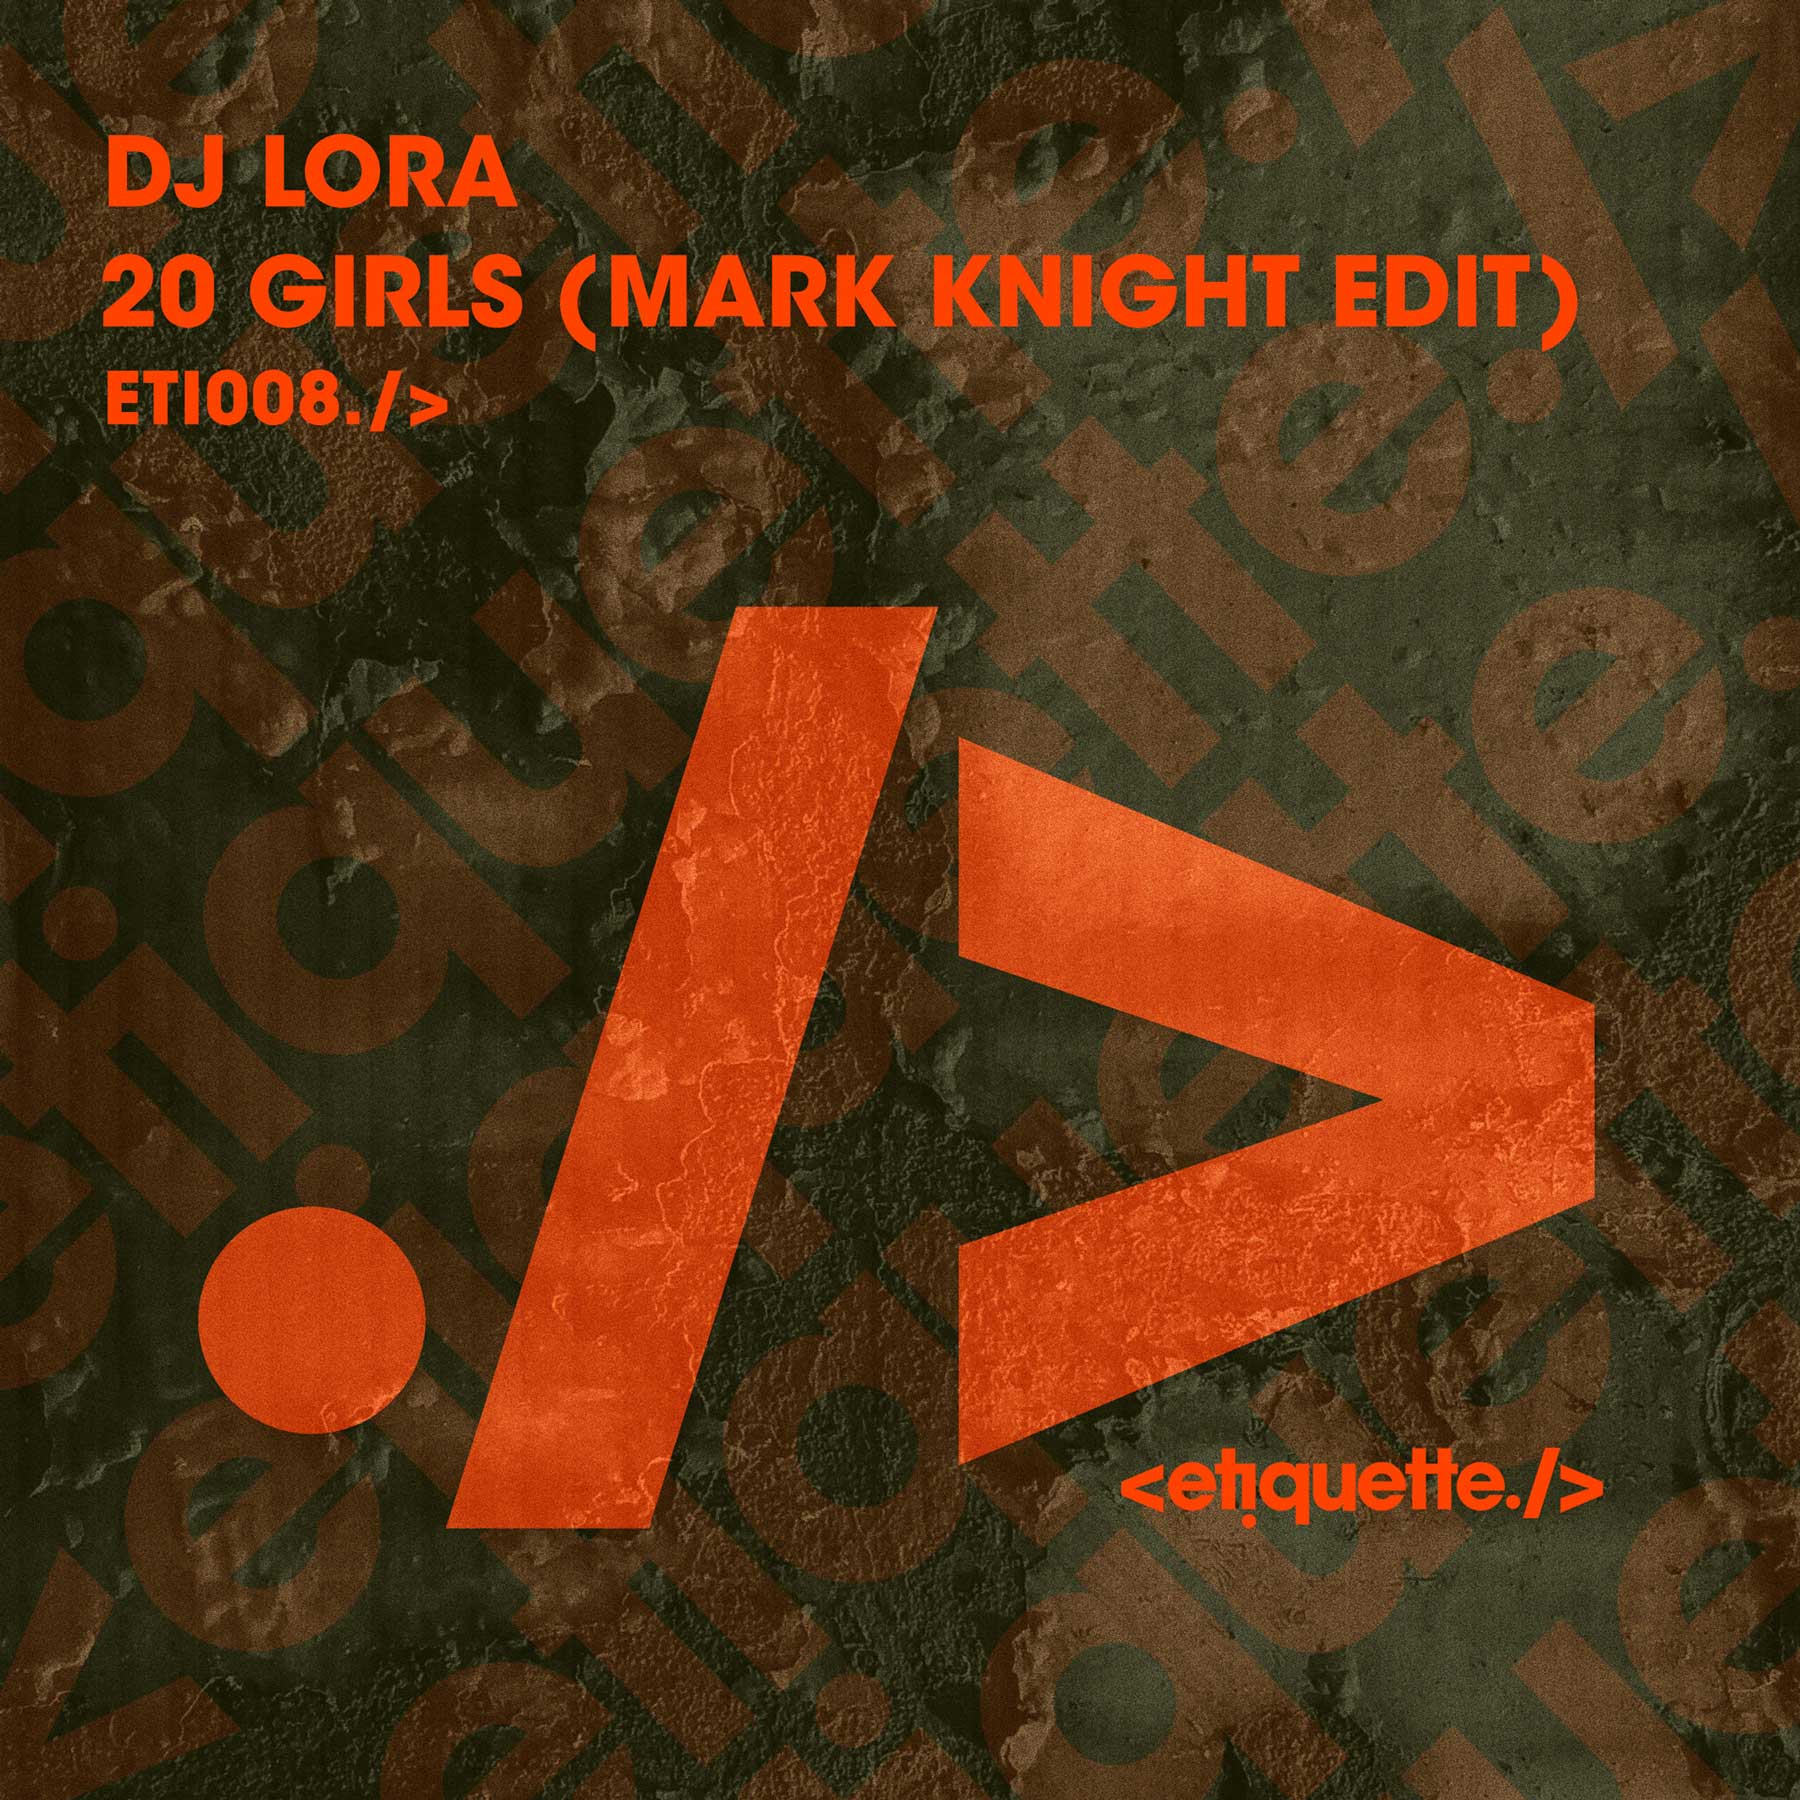 - We've got some more new music for you... Toolroom Records' head honcho and main man Mark Knight delivers his edit of 20 Girls from UK's very own DJ Lora. One to get you and dance floor moving - OUT NOW.Buy / Stream Link:https://etiquette.lnk.to/20GirlsEP